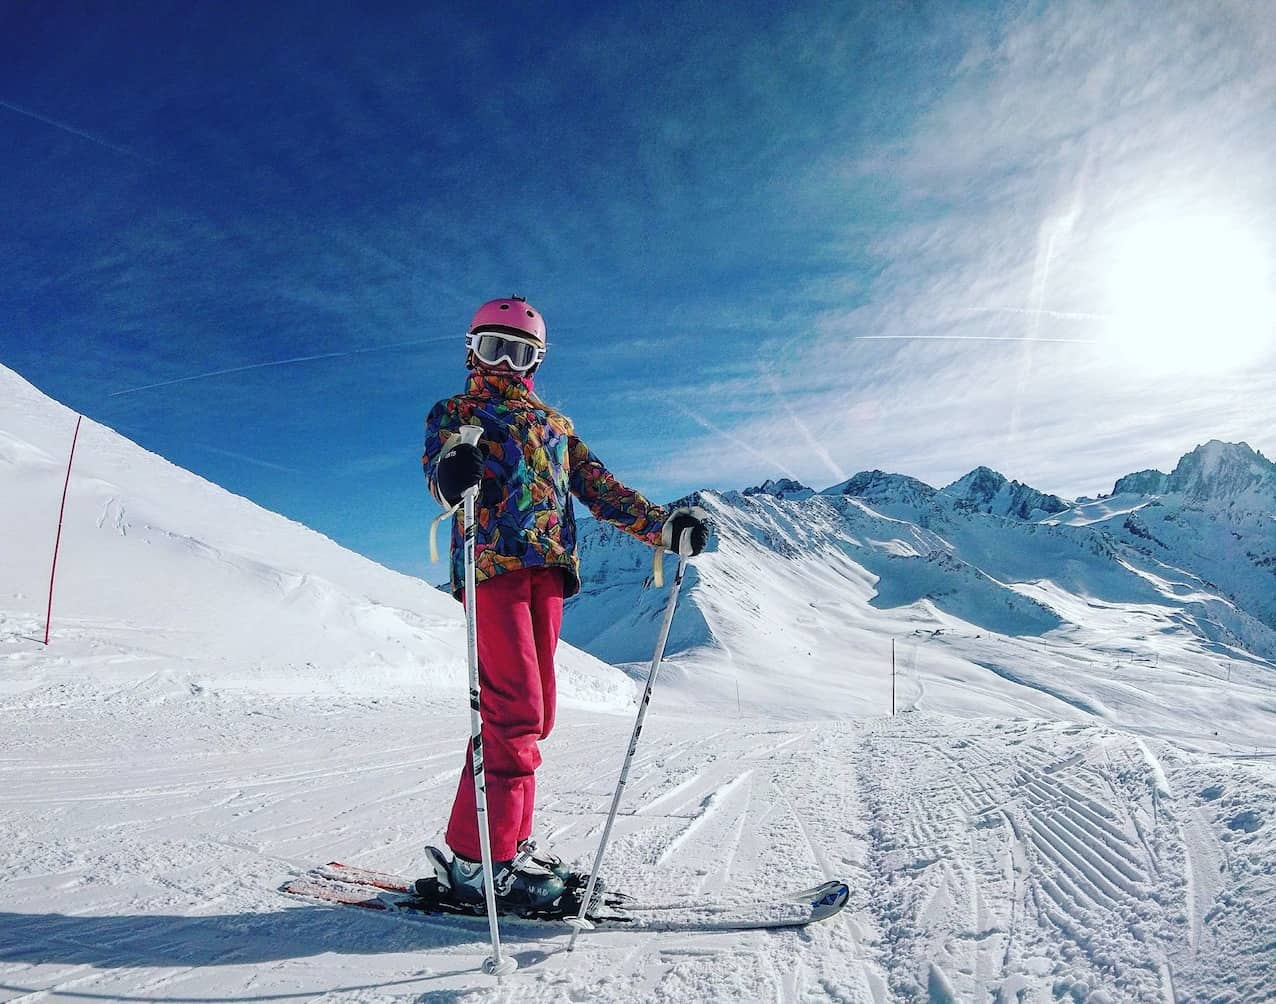 essentials for skiing - goggles